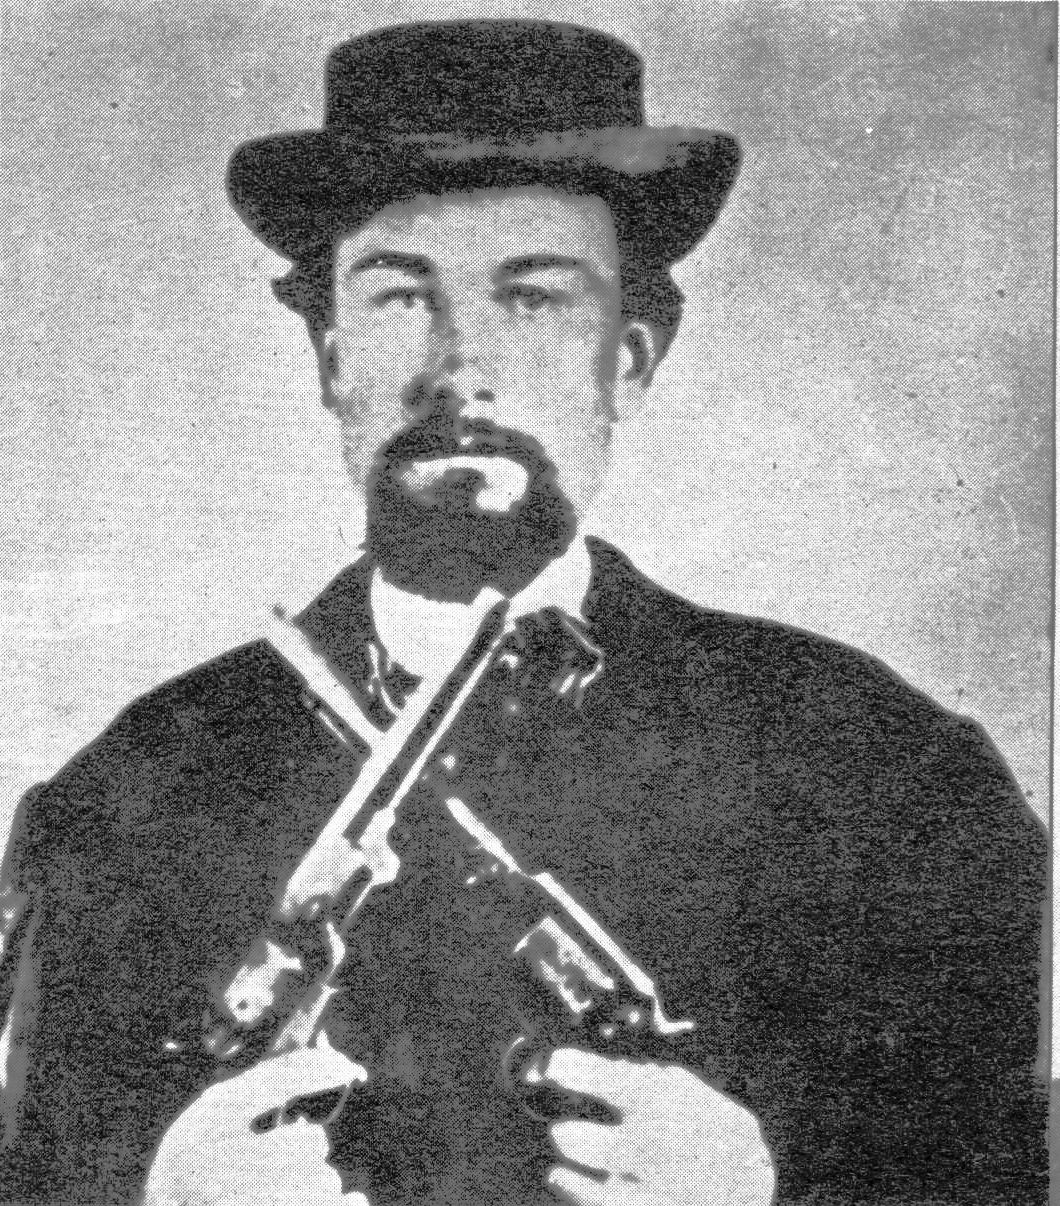 J. Frank Dalton From the book: Jesse James Was One of His Names